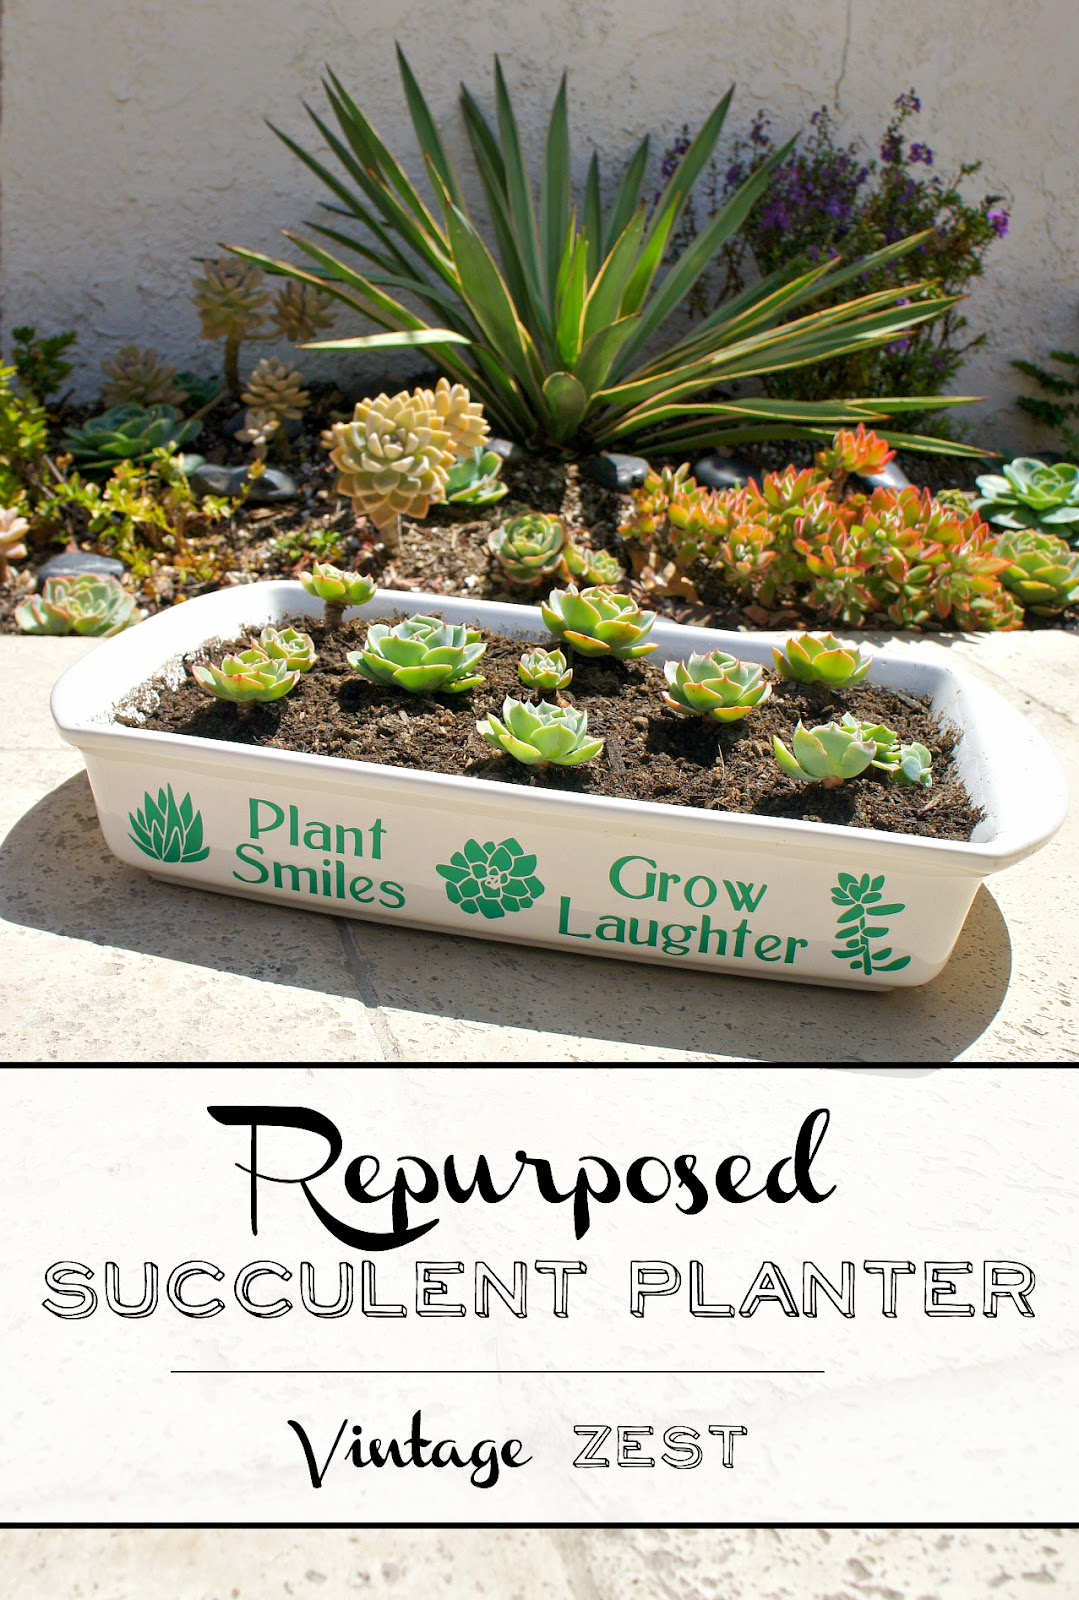 DIY Repurposed Succulent Planter on Diane's Vintage Zest!  #craft #repurpose #garden #diy #vinyl